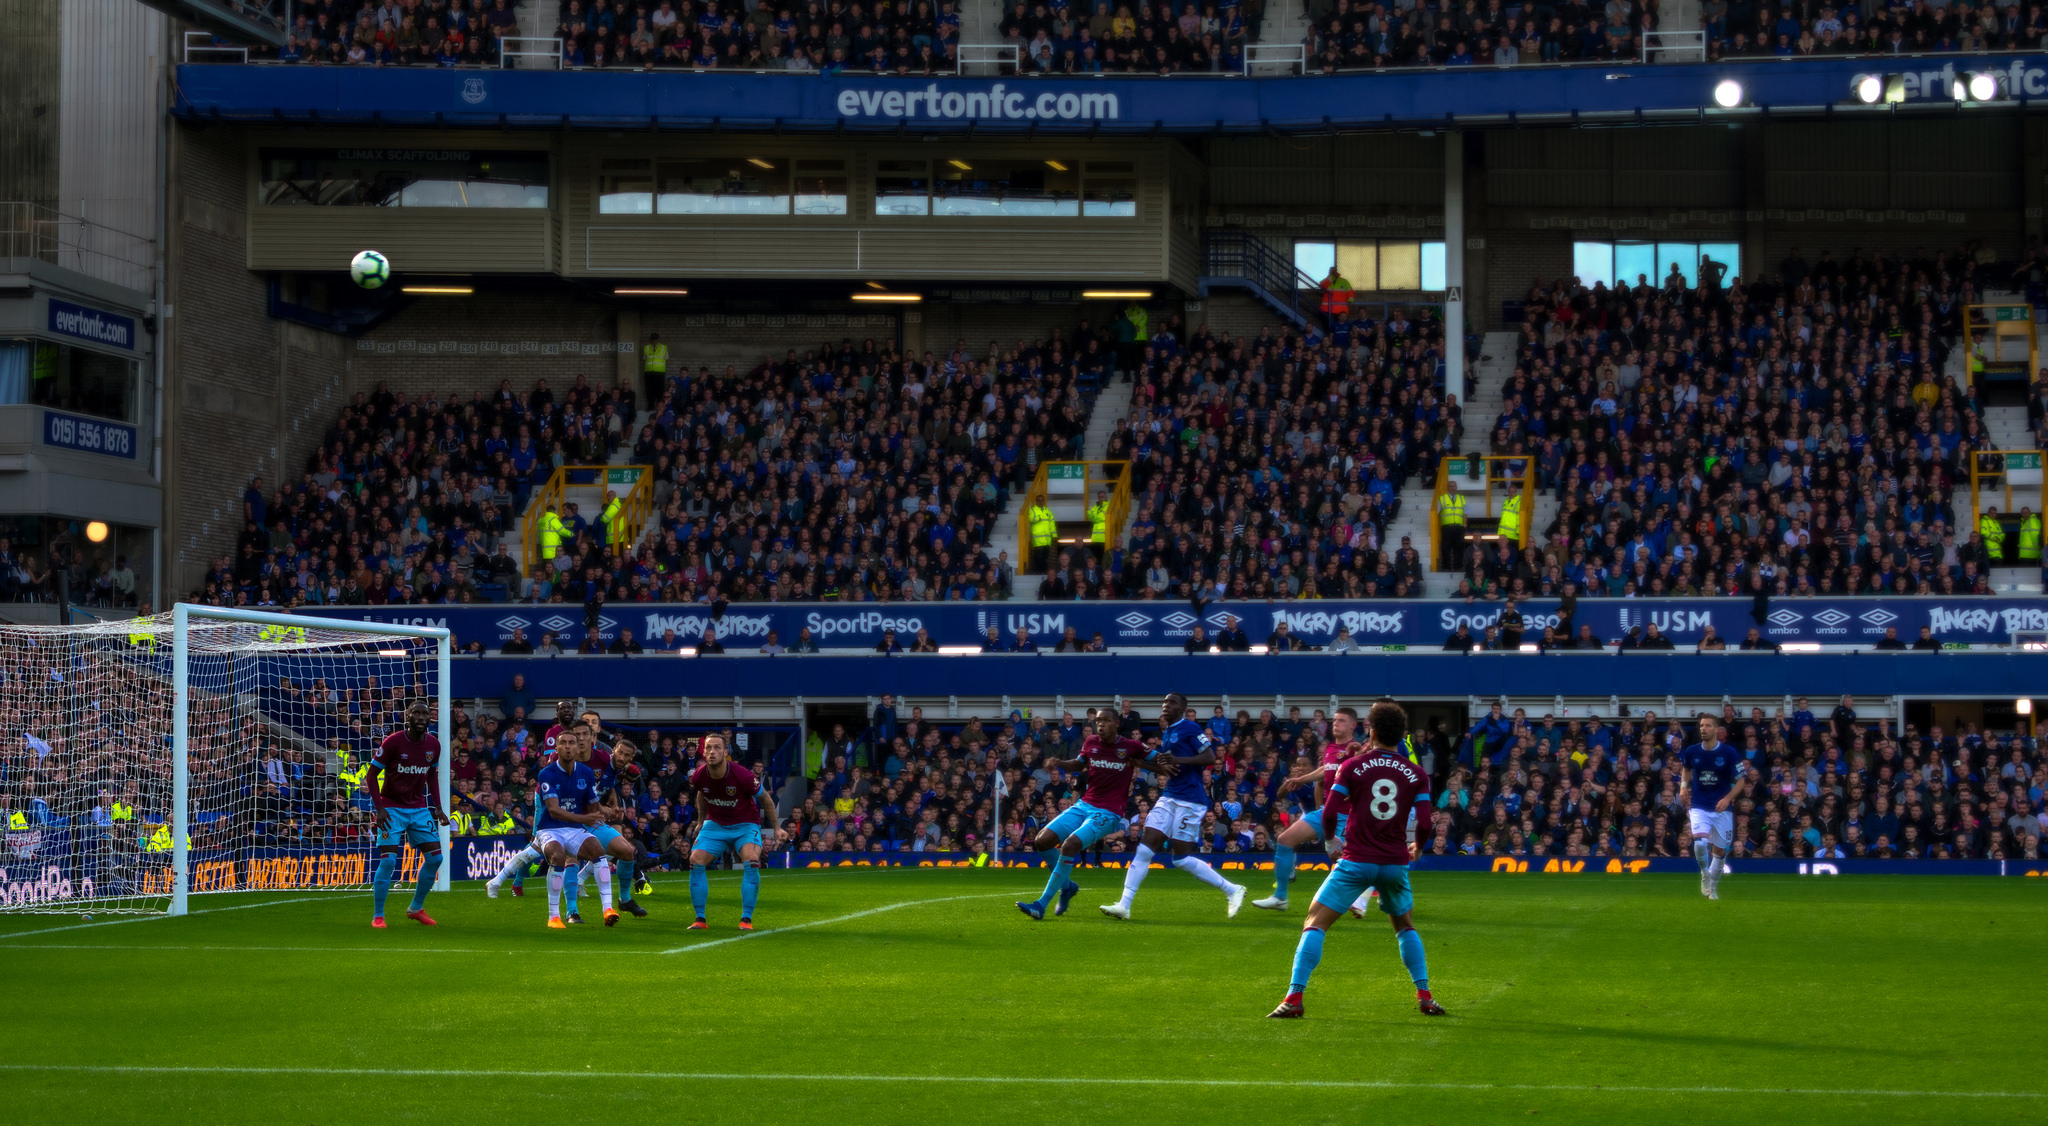 Everton vs West Ham United September 2018